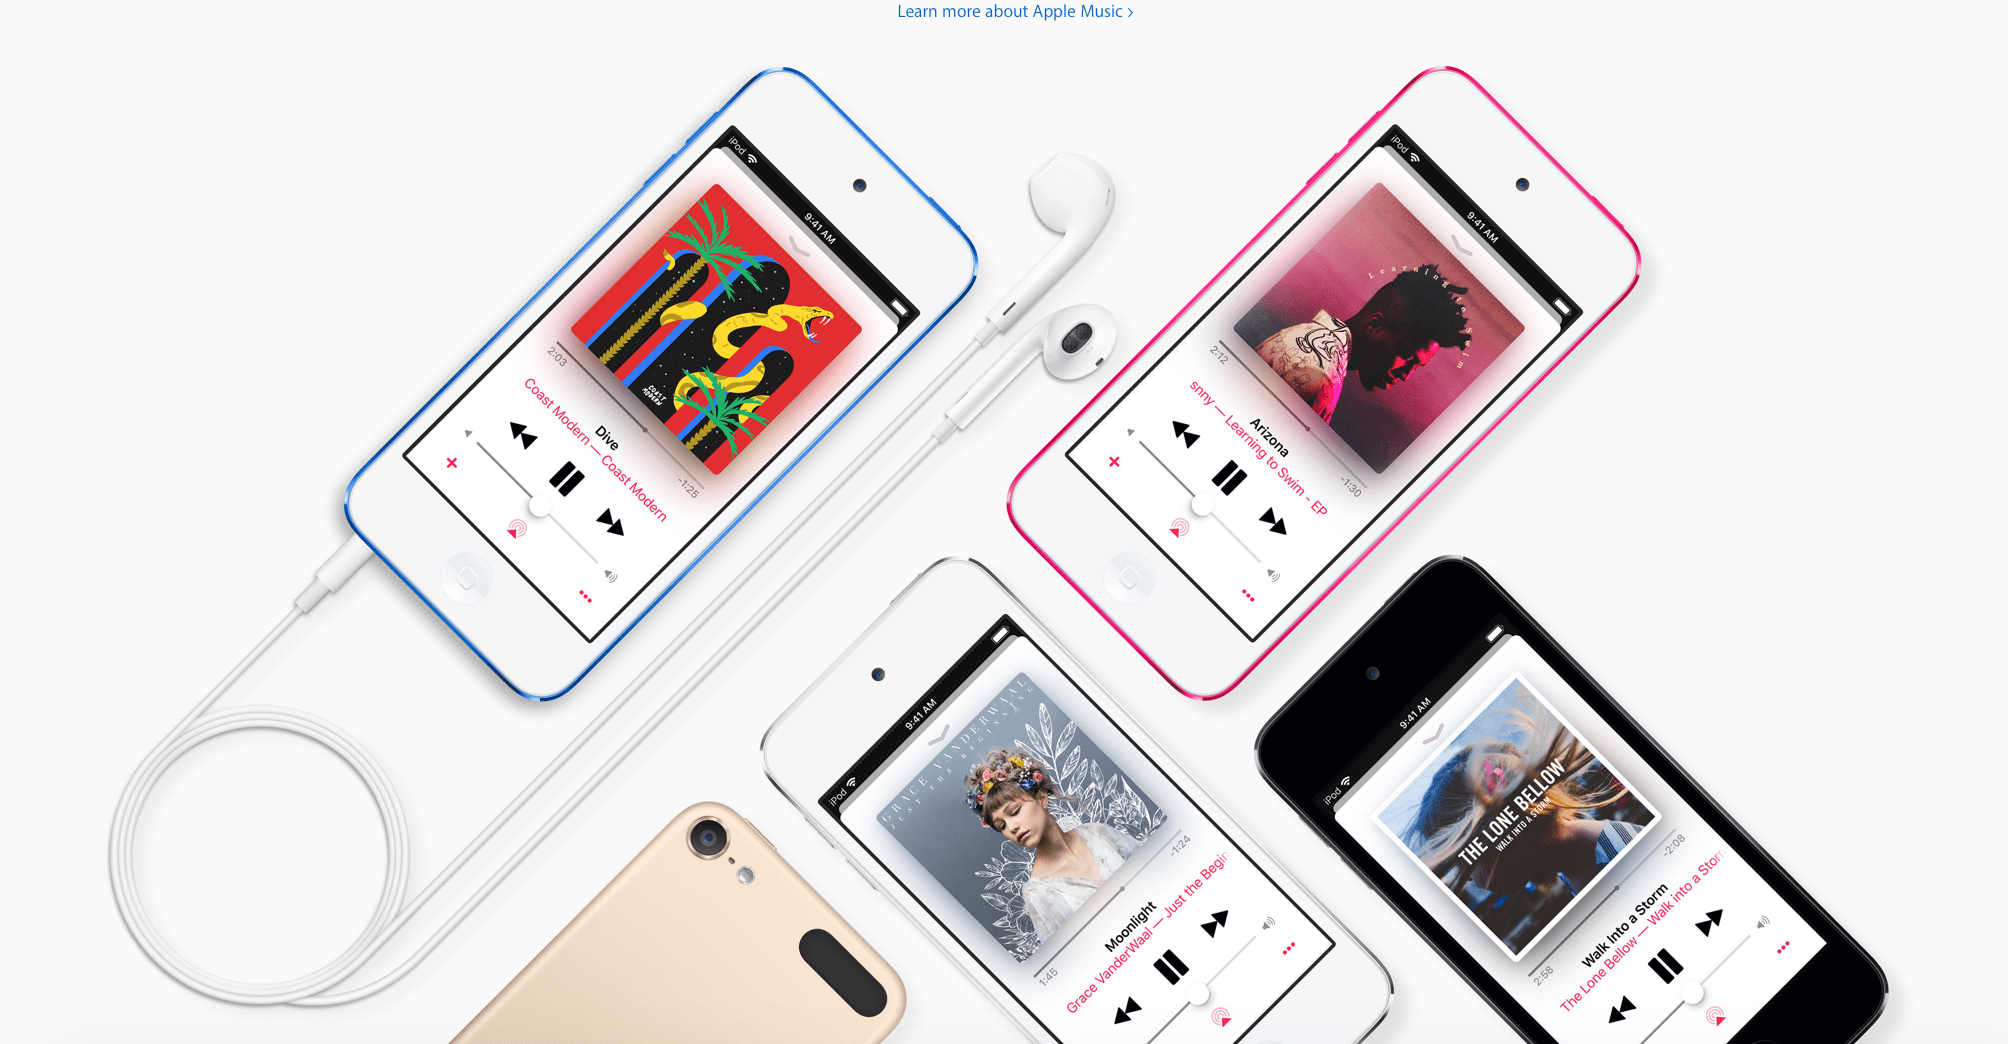 Apple to release iPod Touch as third surprise announcement in 3 days